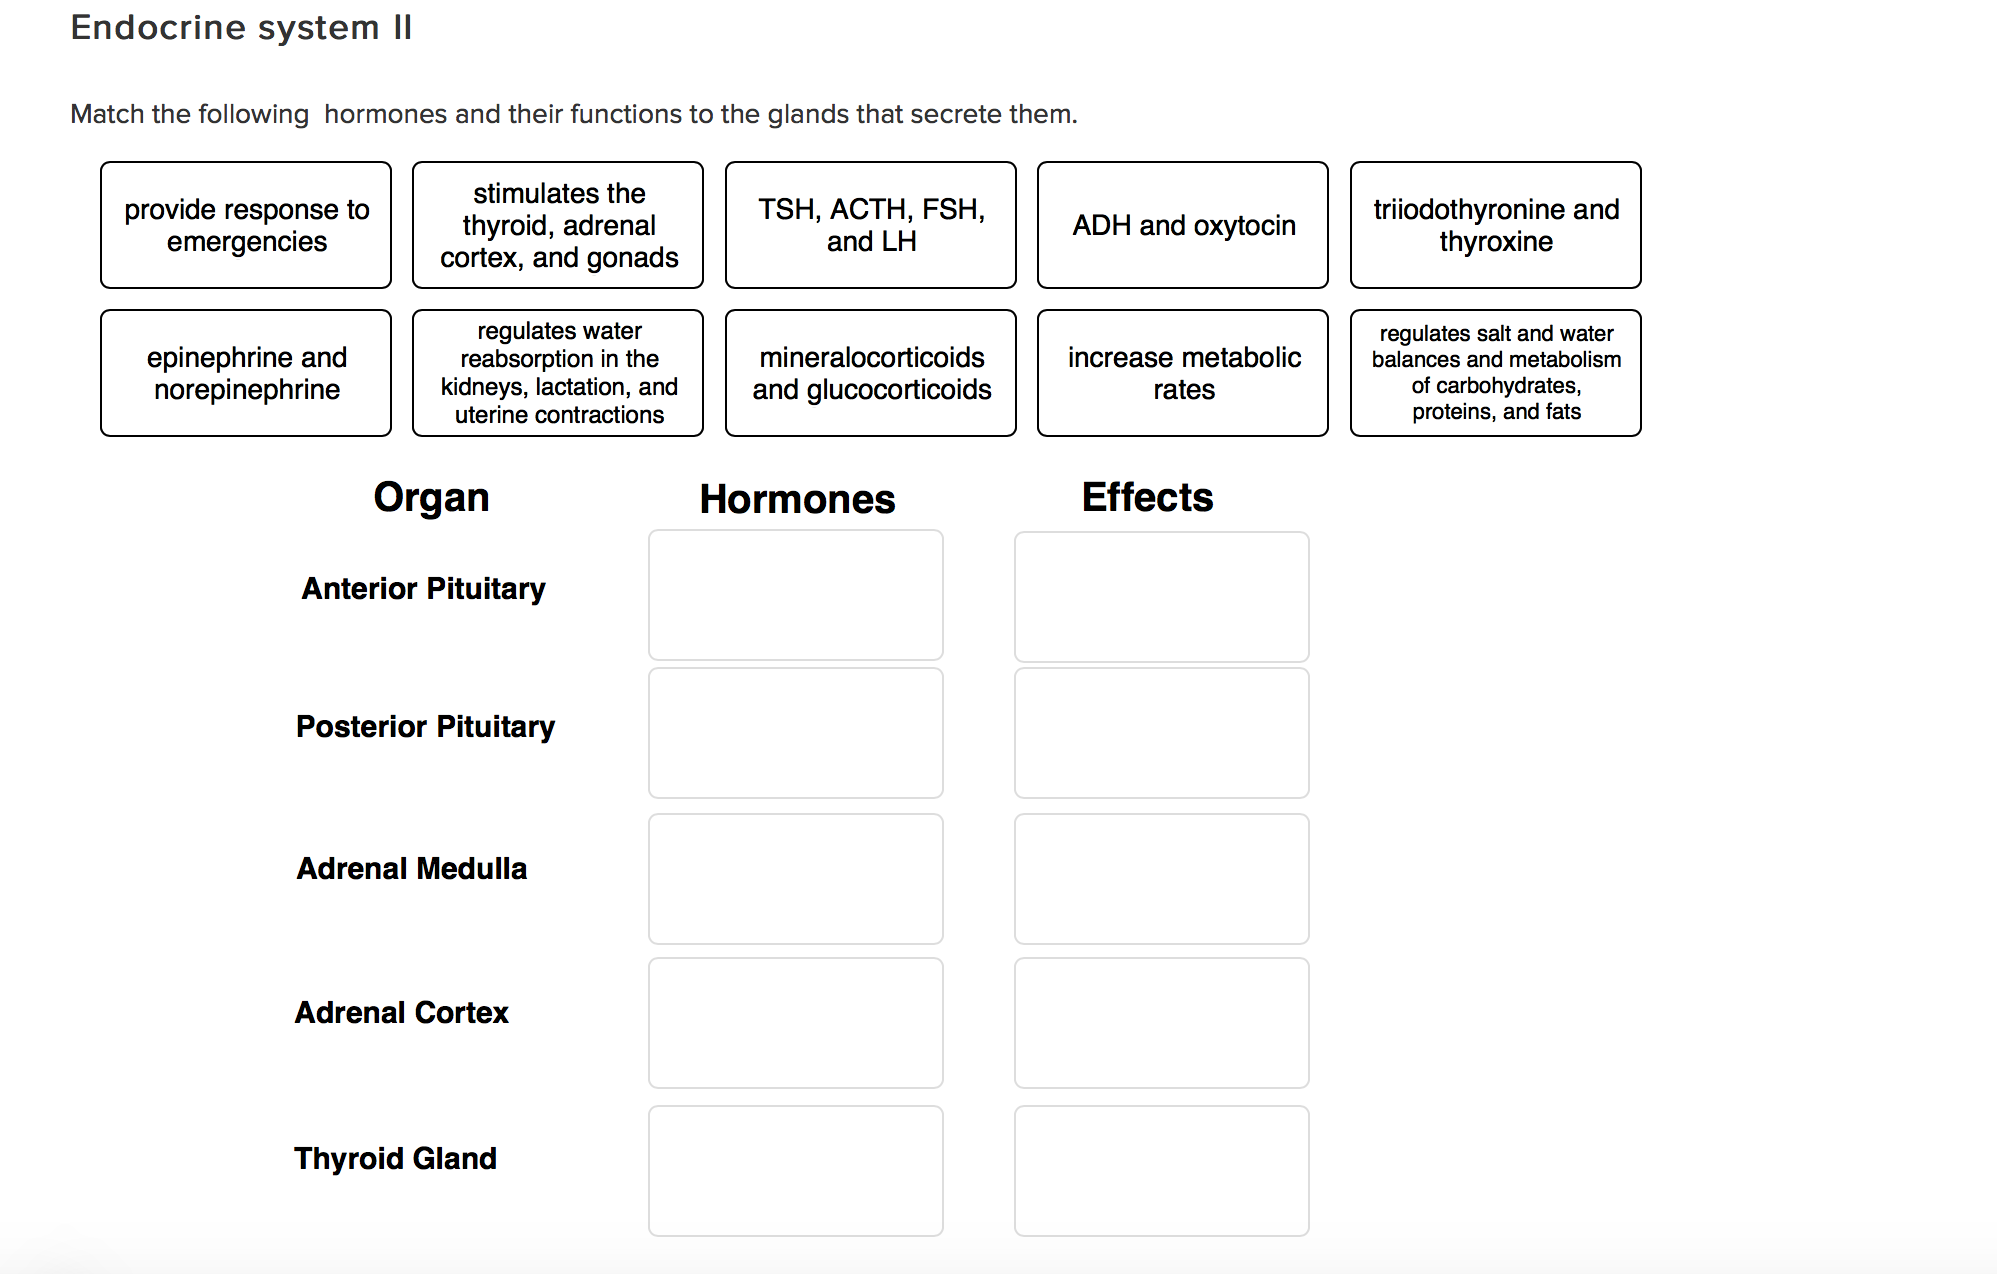 solved match the following hormones and their functions t